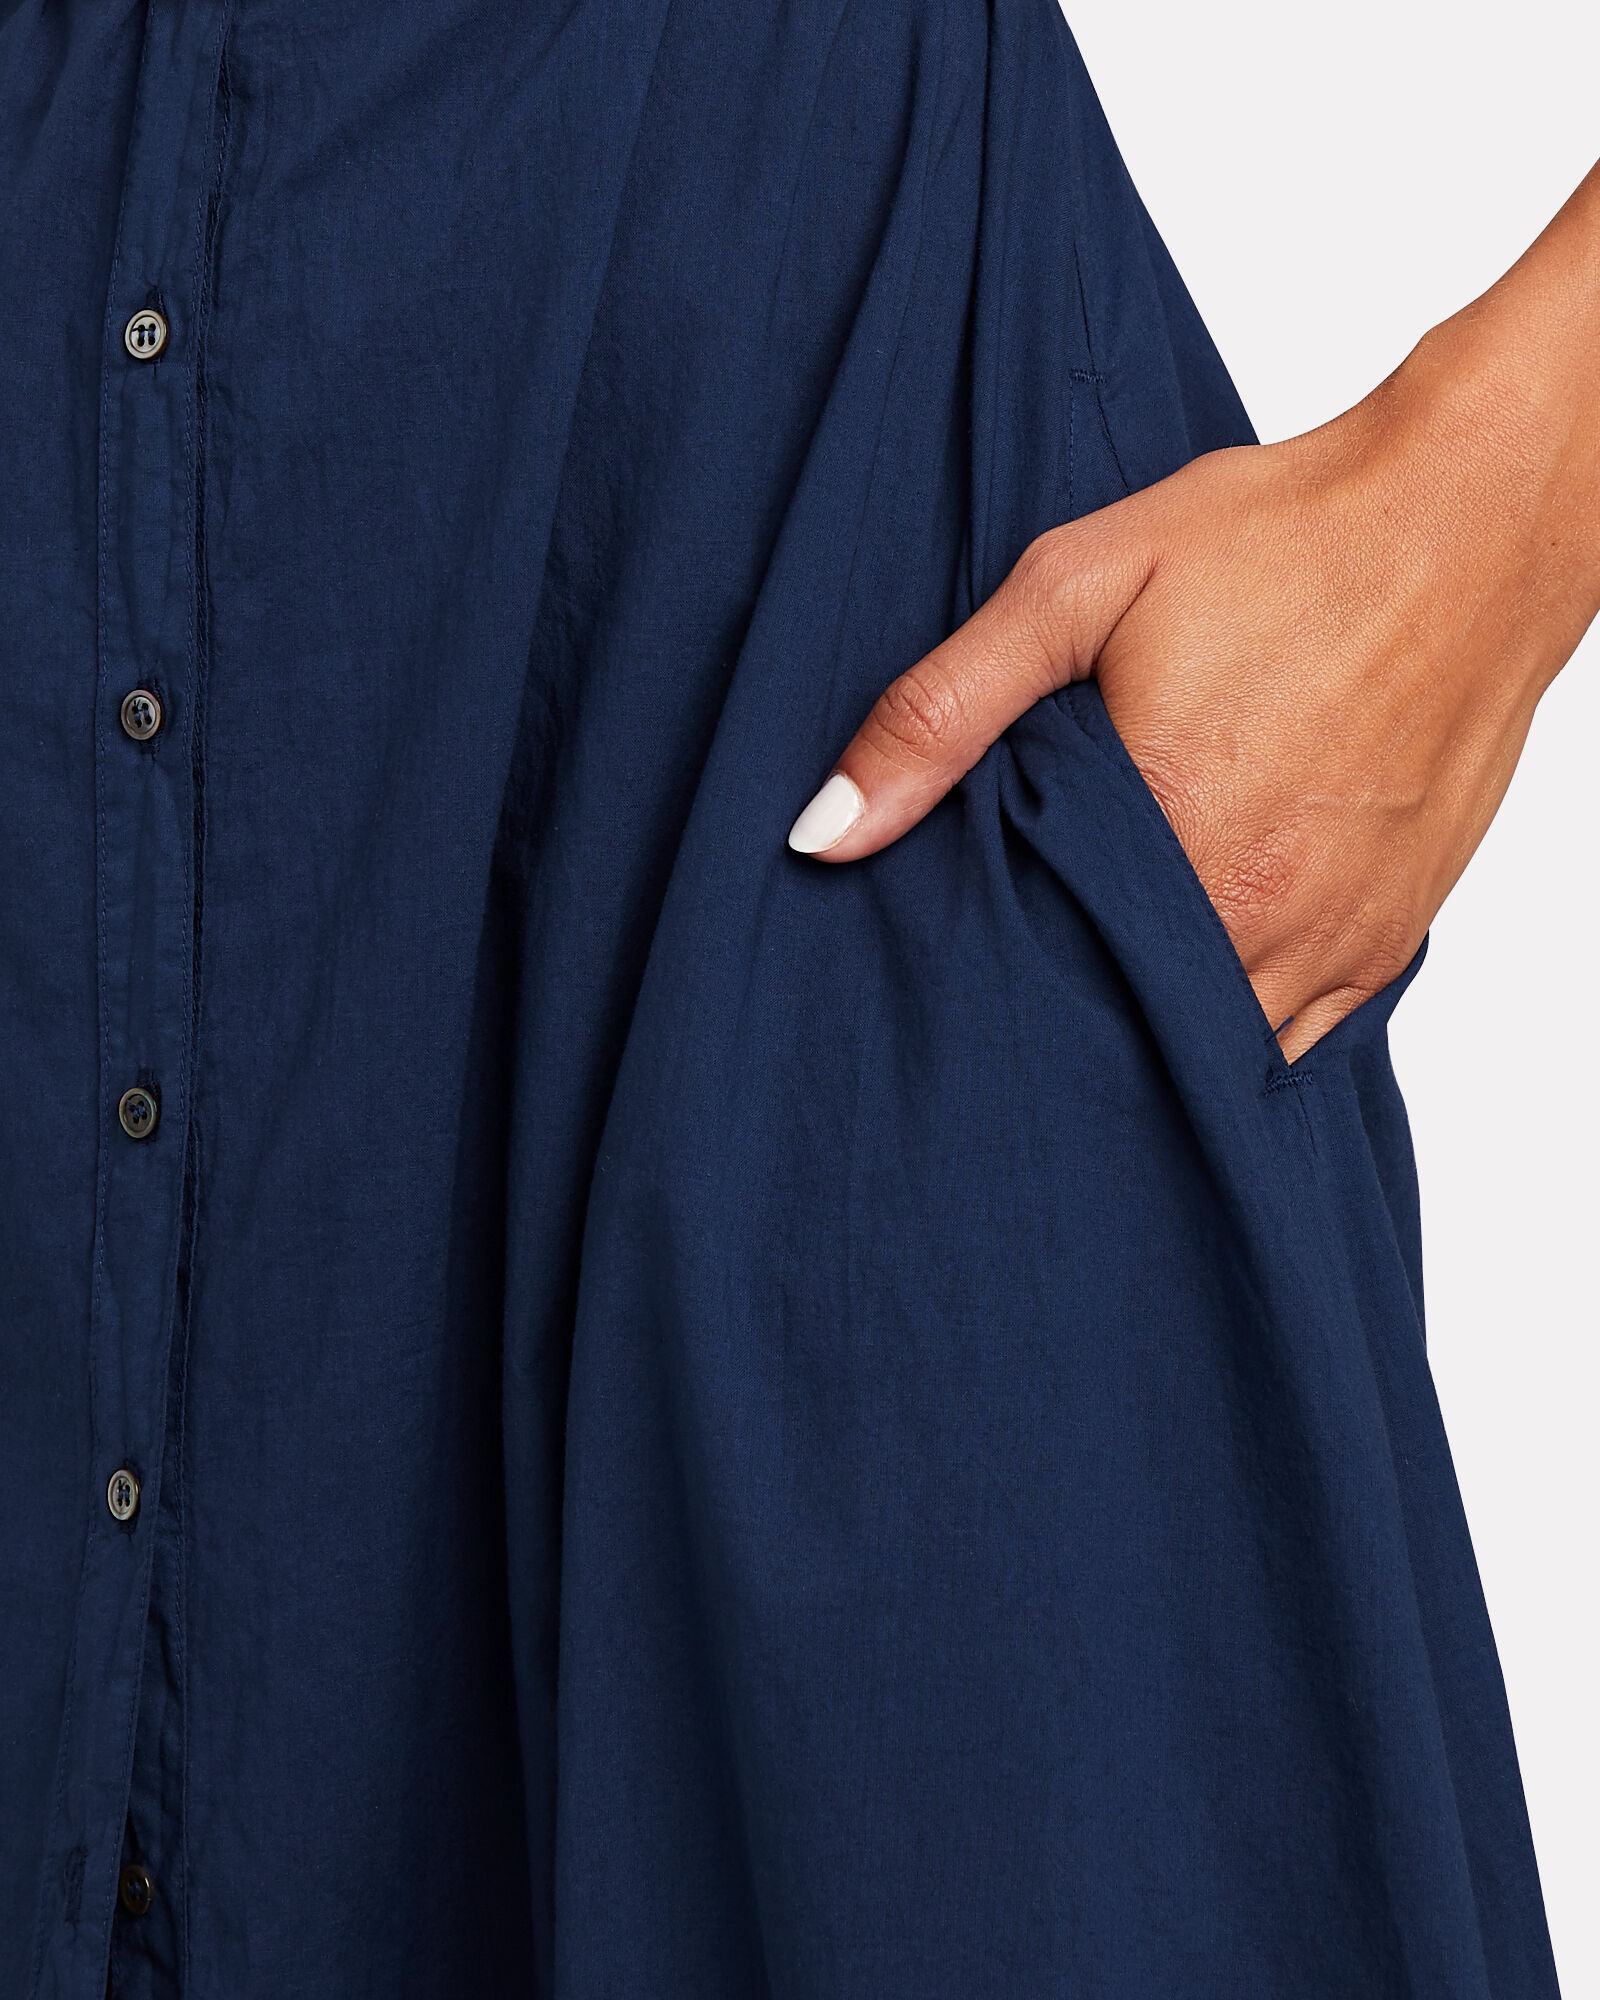 Boden Cotton Midi Shirt Dress, , hi-res